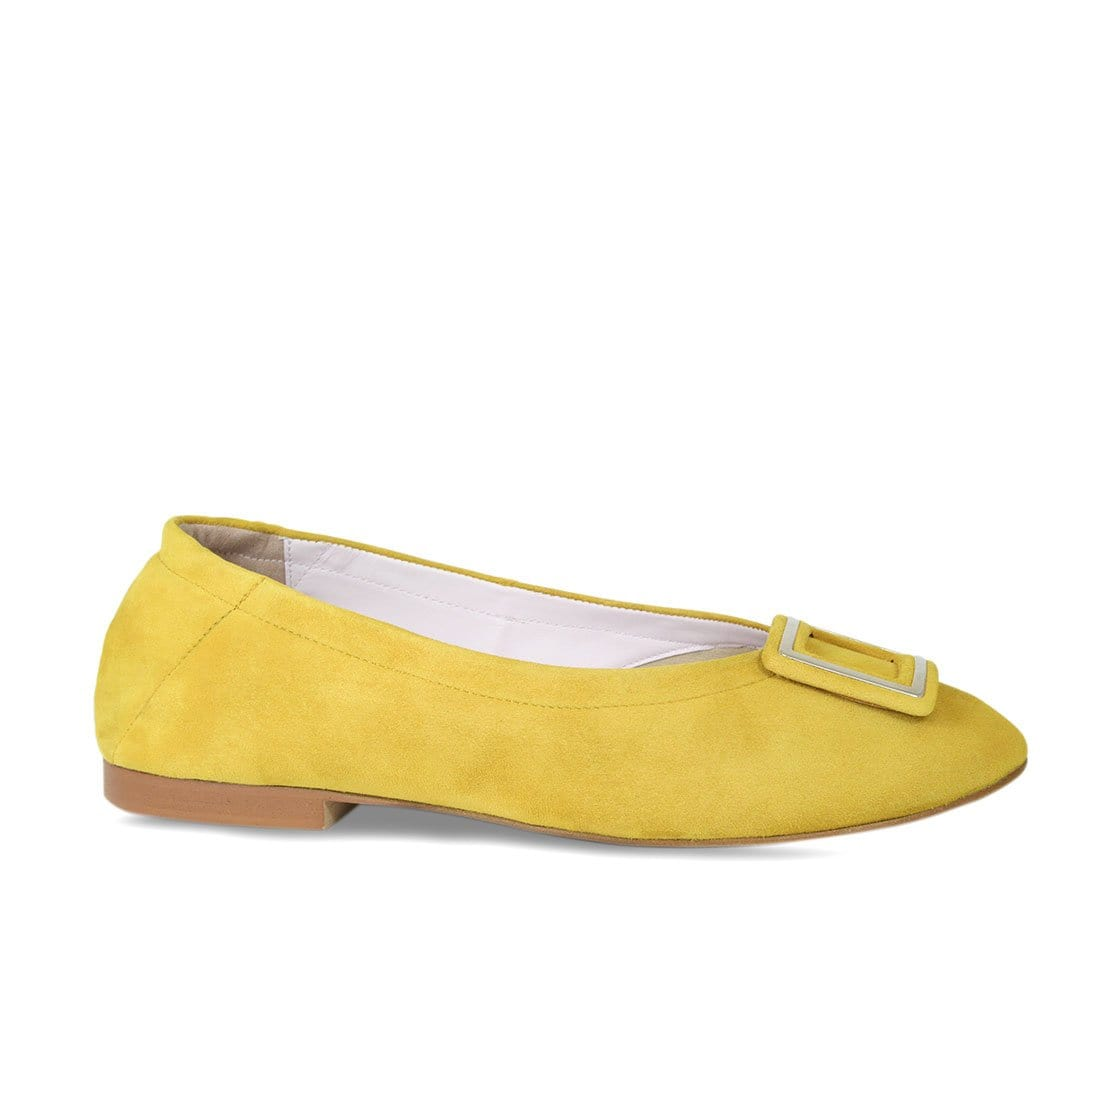 Yellow Suede Ballet Flat with Buckle